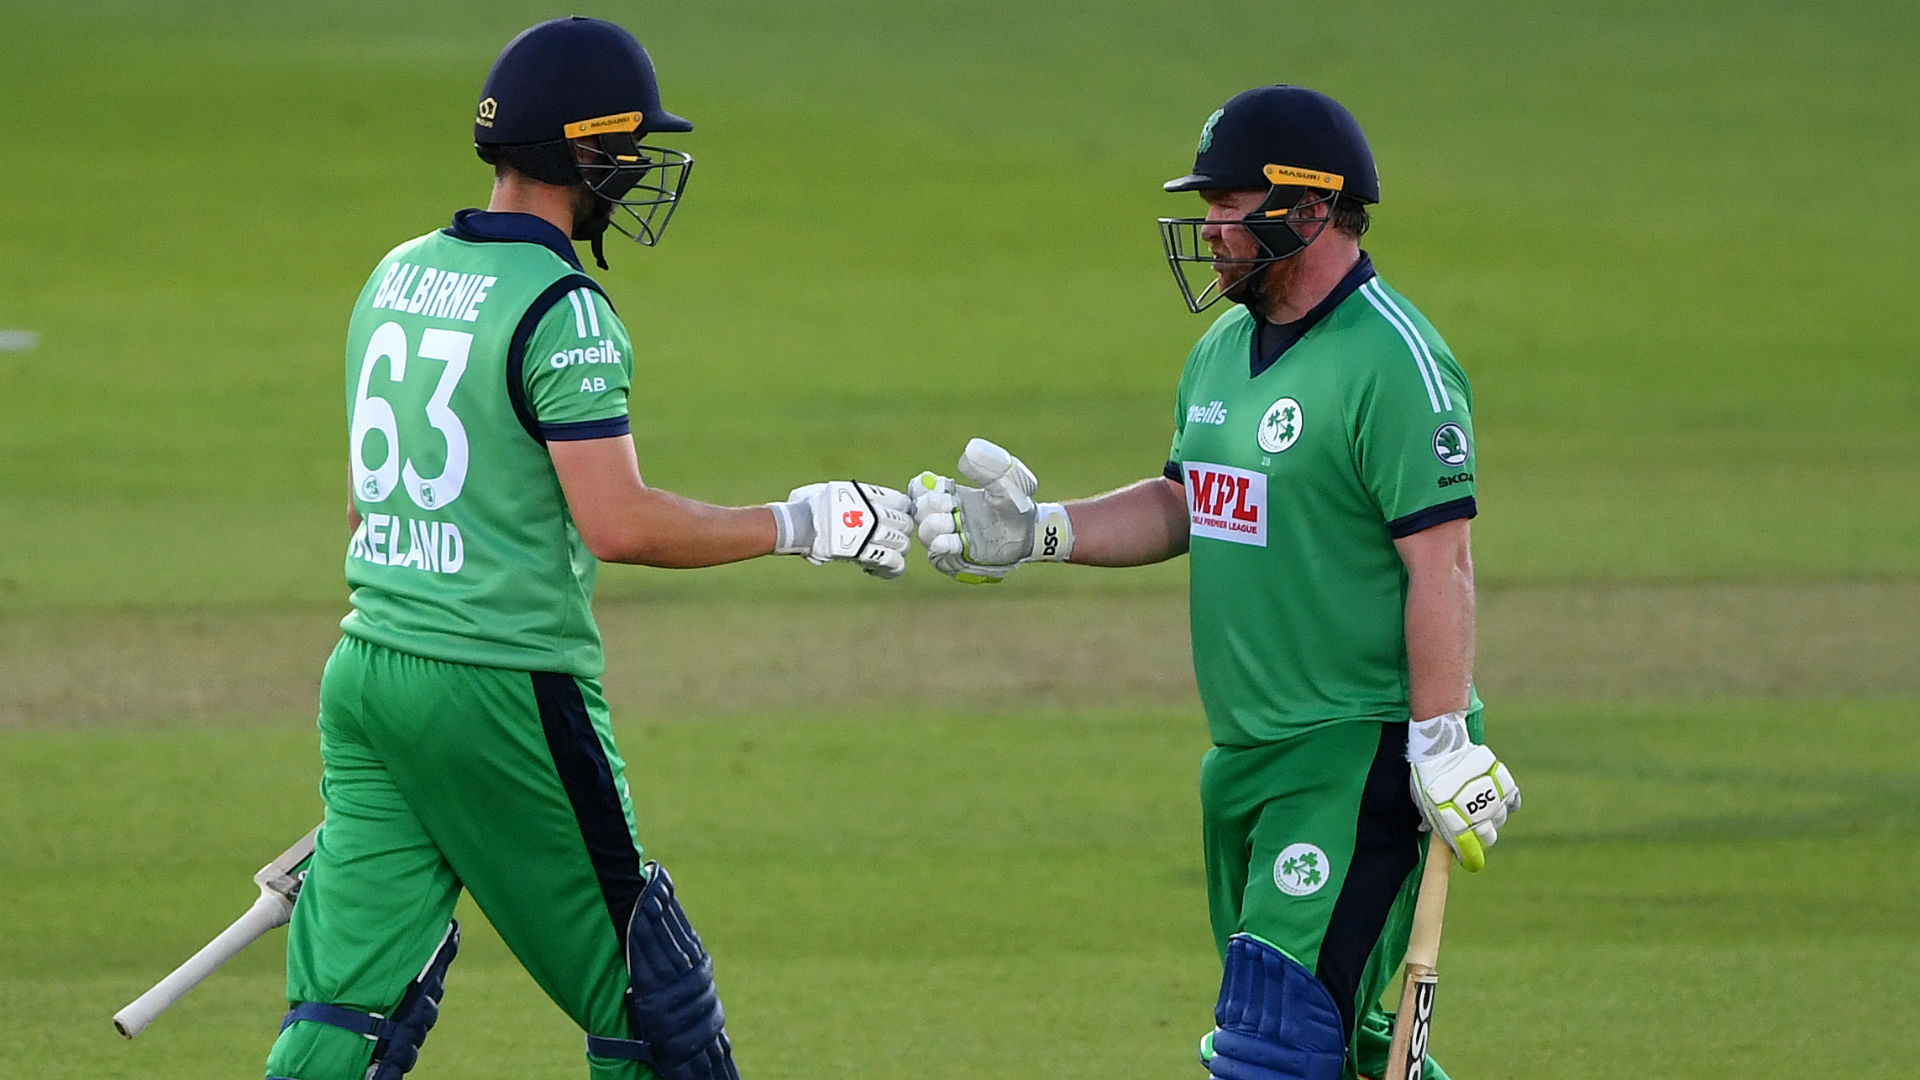 Ireland bring back World Cup memories with stunning ODI win over England